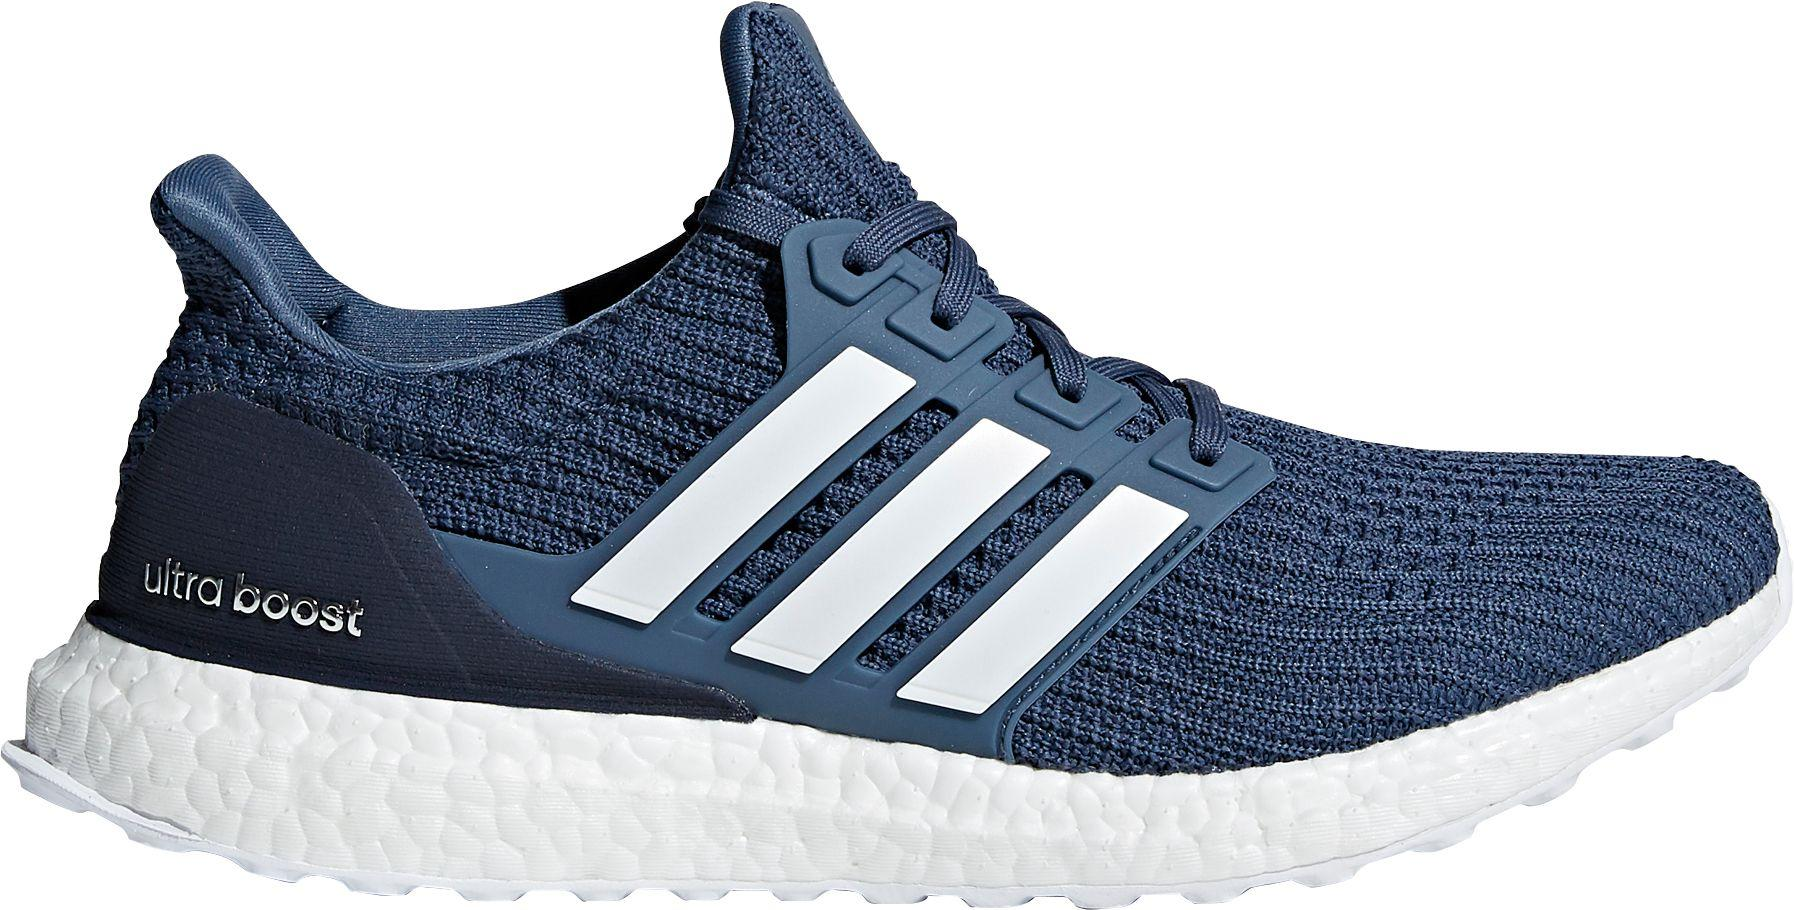 0ac2538cf0682 Lyst - adidas Ultraboost Dna Running Shoes in Blue for Men